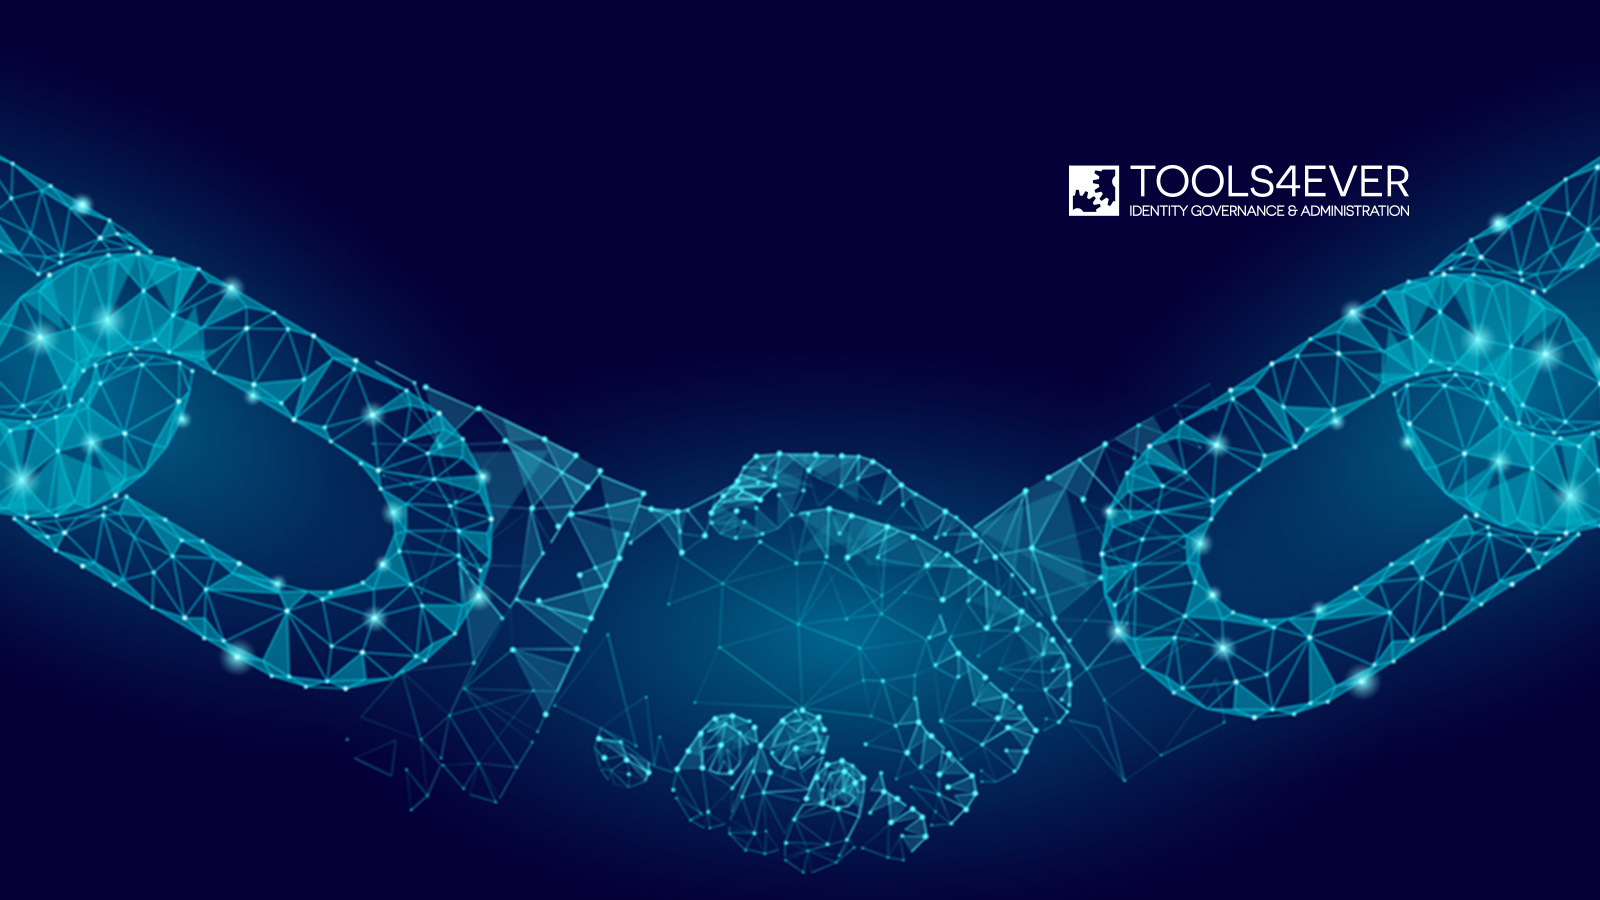 Tools4ever Announces New Technology Partnership with Ellucian